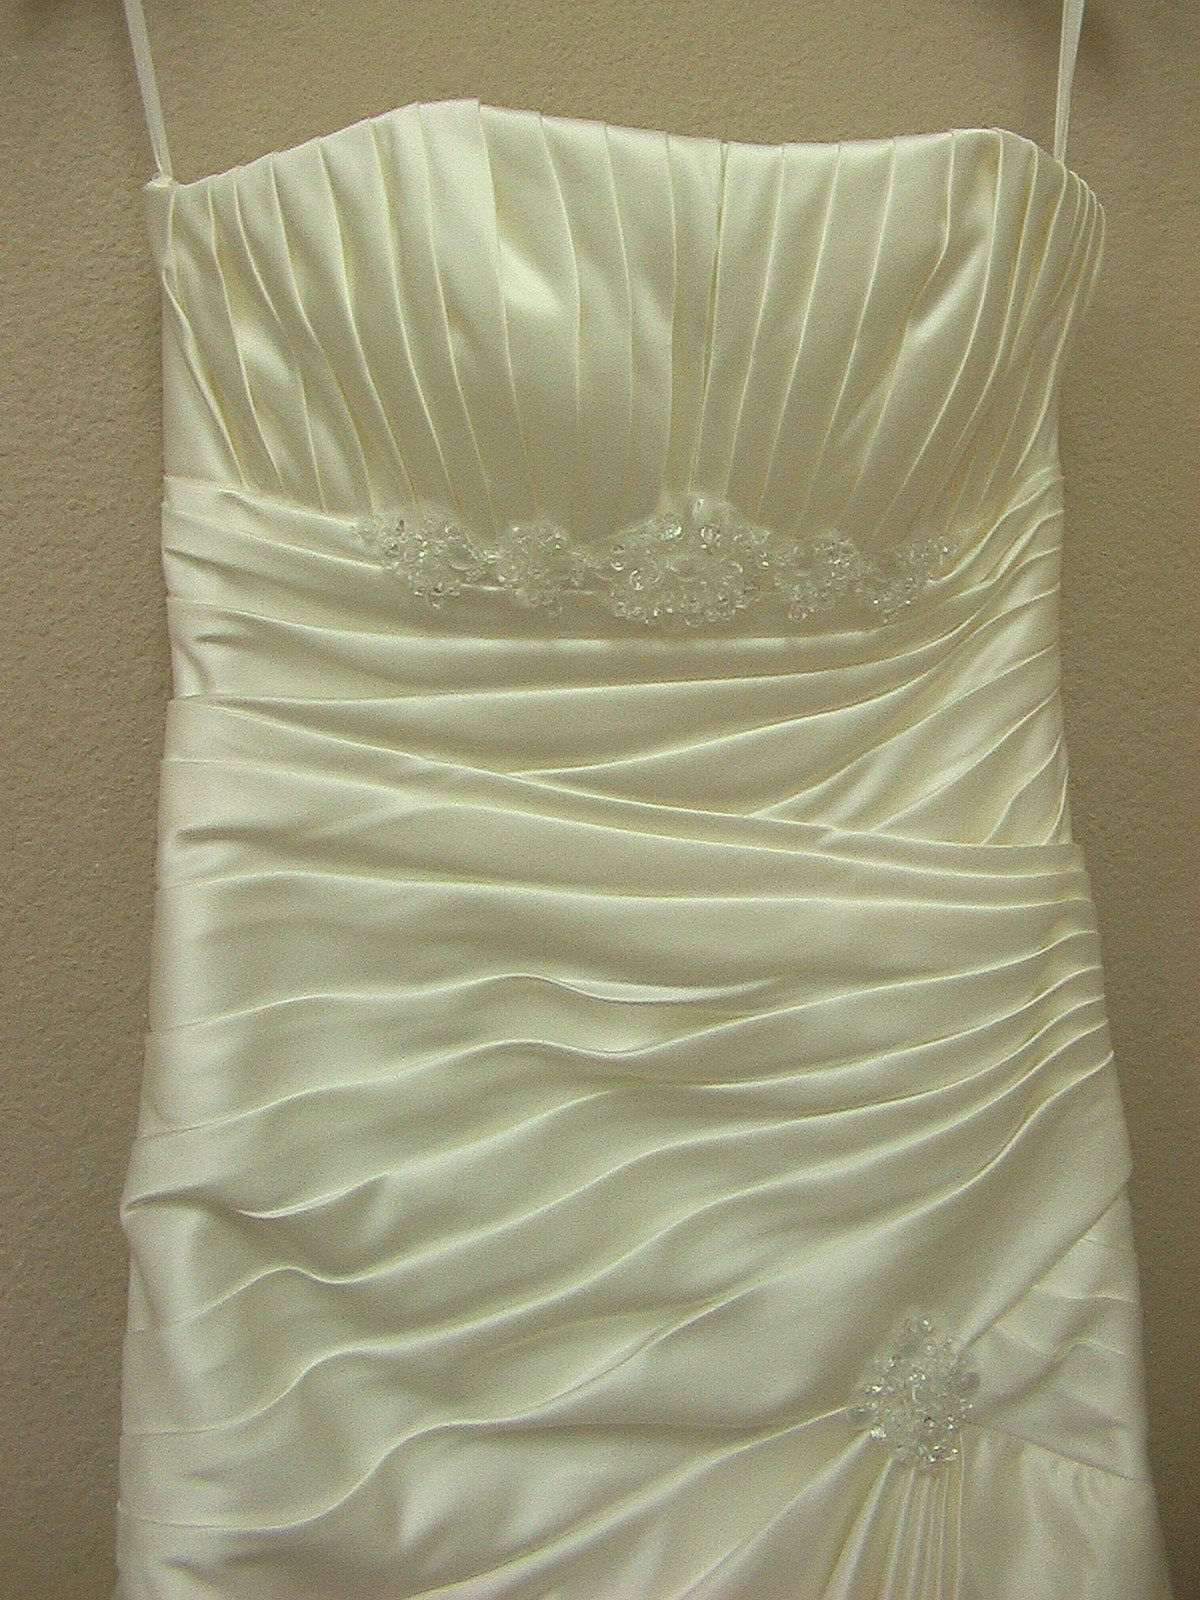 White One 6224 by Pronovias Off White size 8 In Stock Wedding Dress - Tom's Bridal